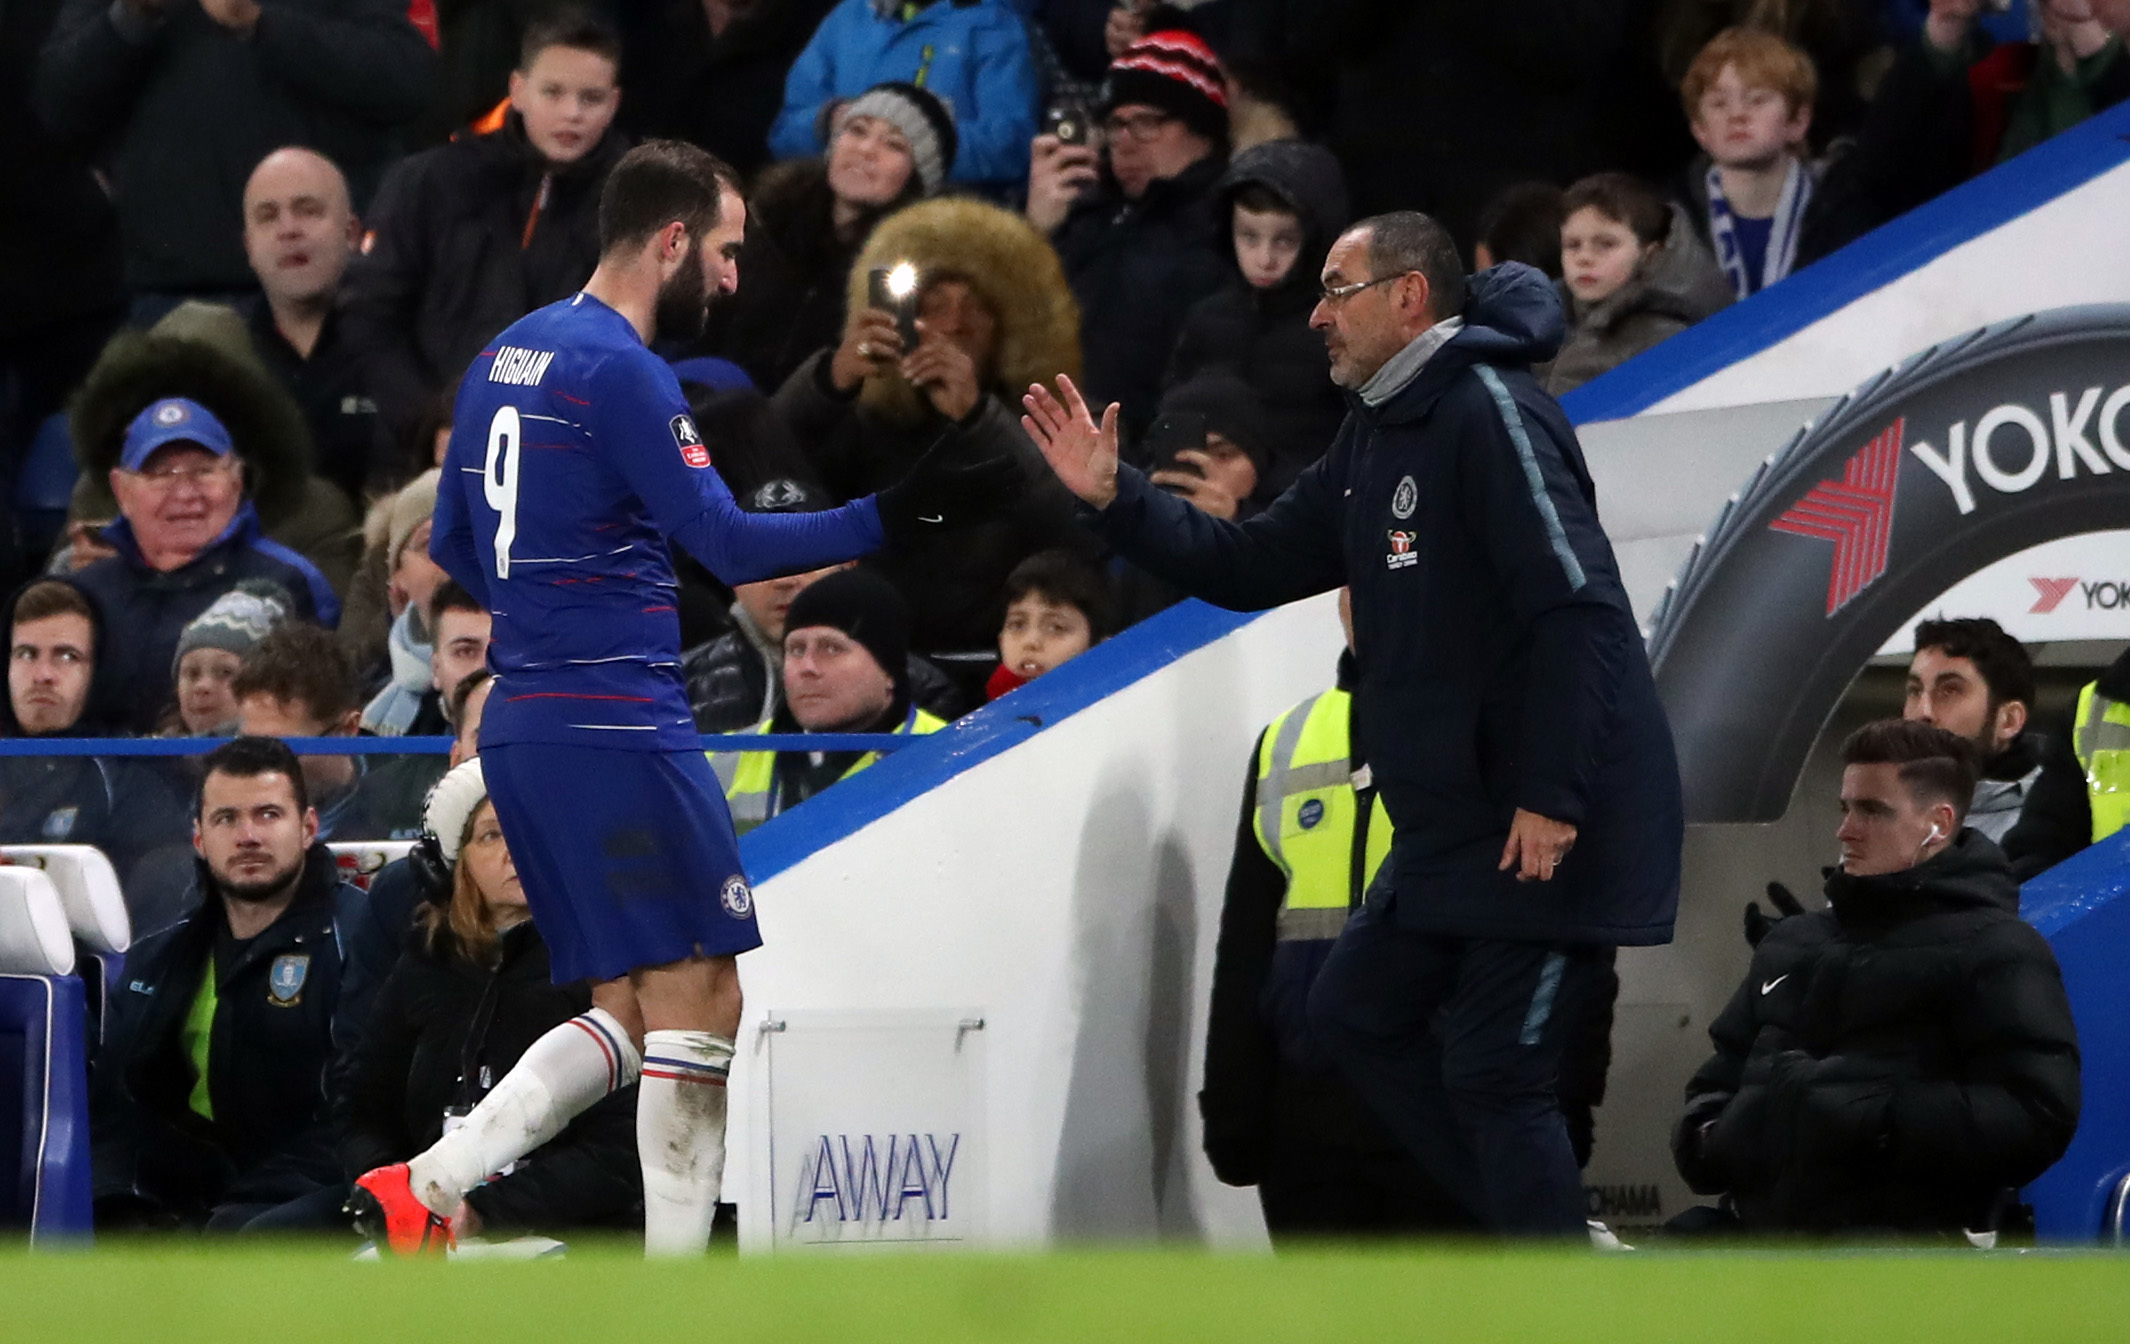 Yes, Gonzalo Higuain and Eden Hazard Can Play Together - Maurizio Sarri